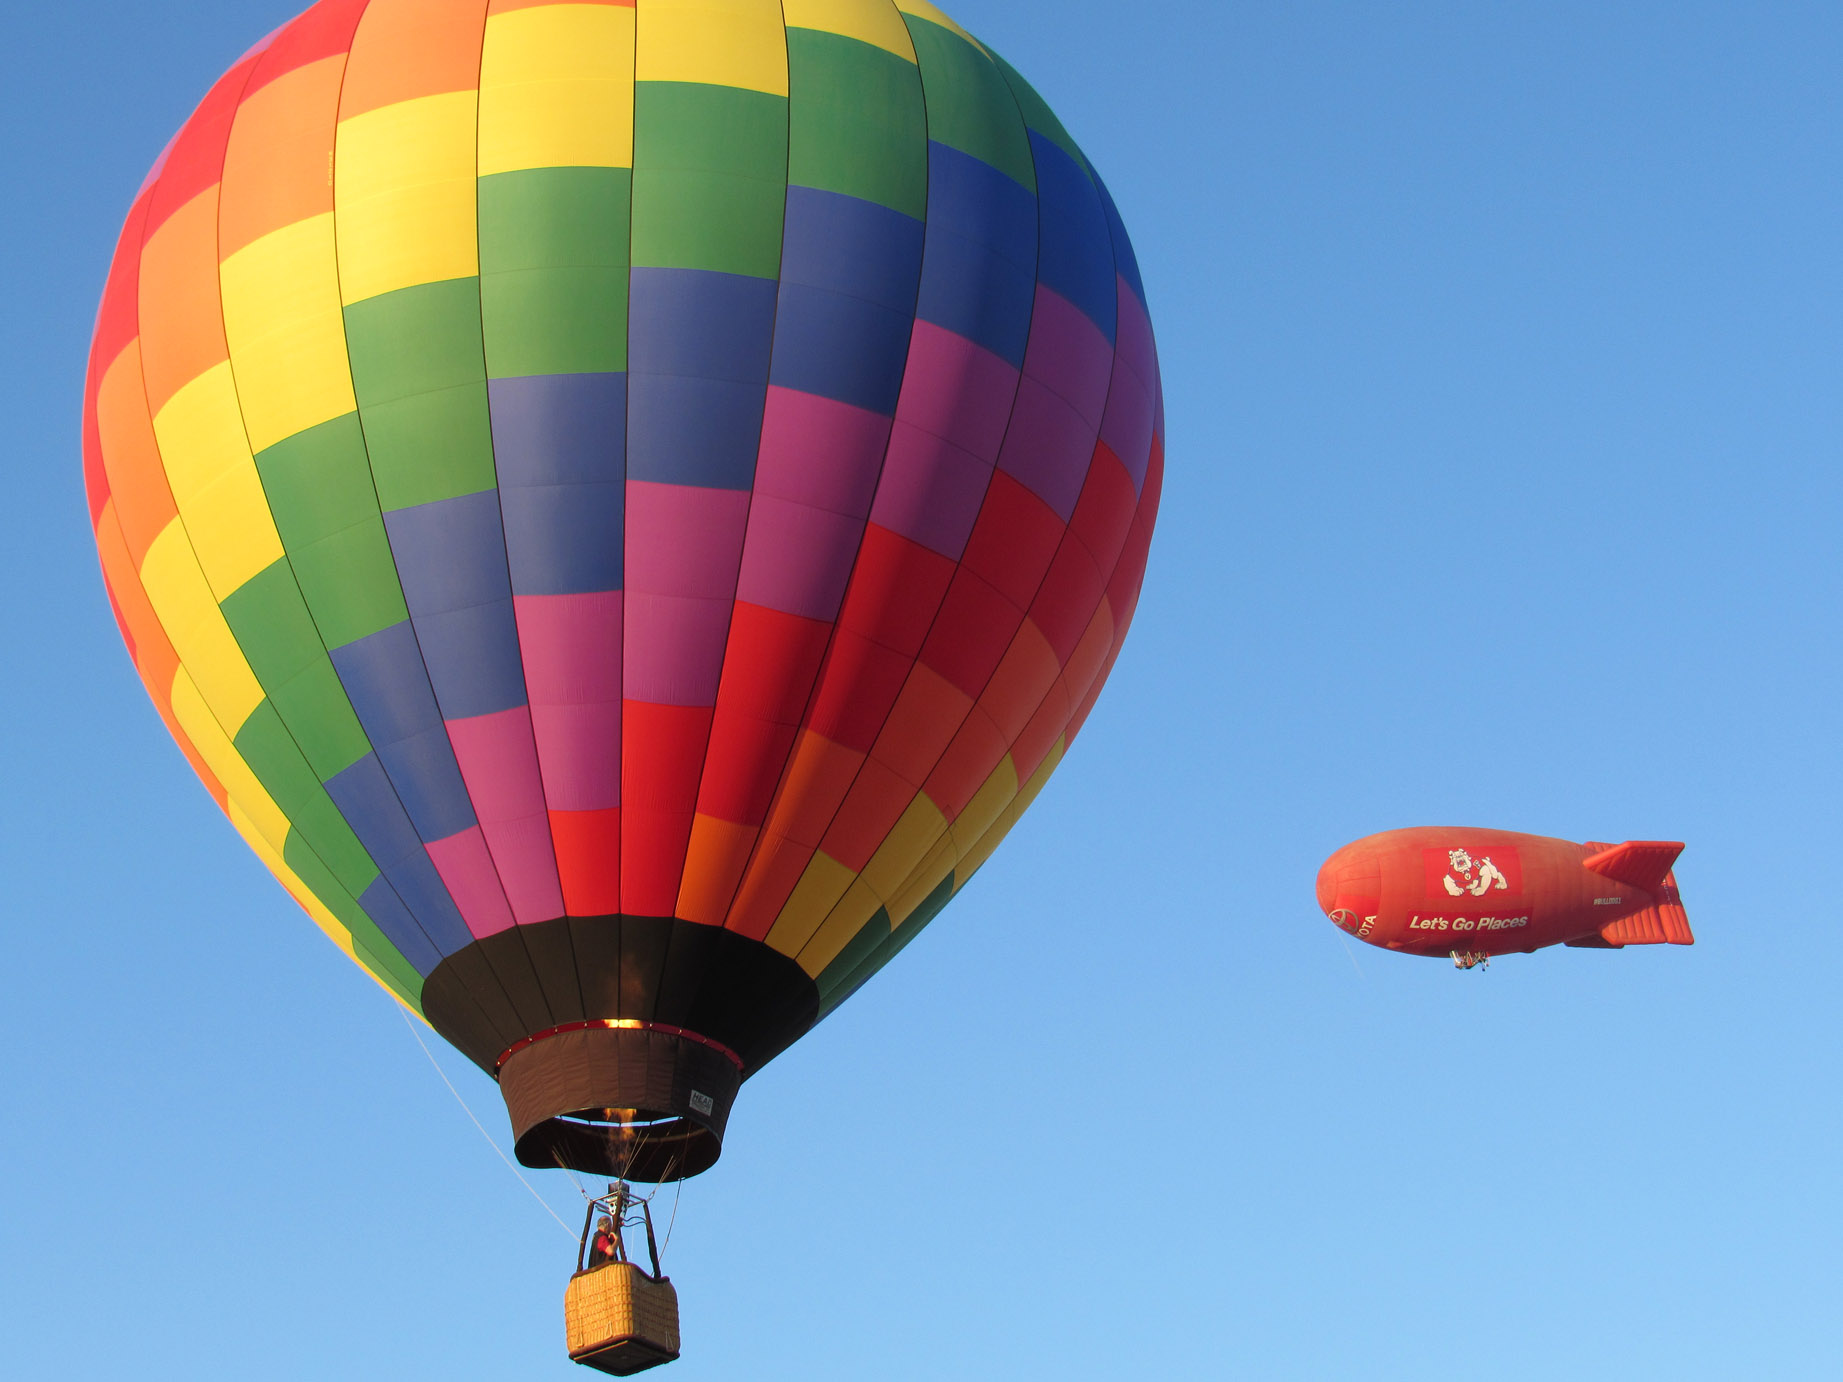 Don't miss ClovisFest & the Hot Air Balloon Fun Fly 2018 this October!